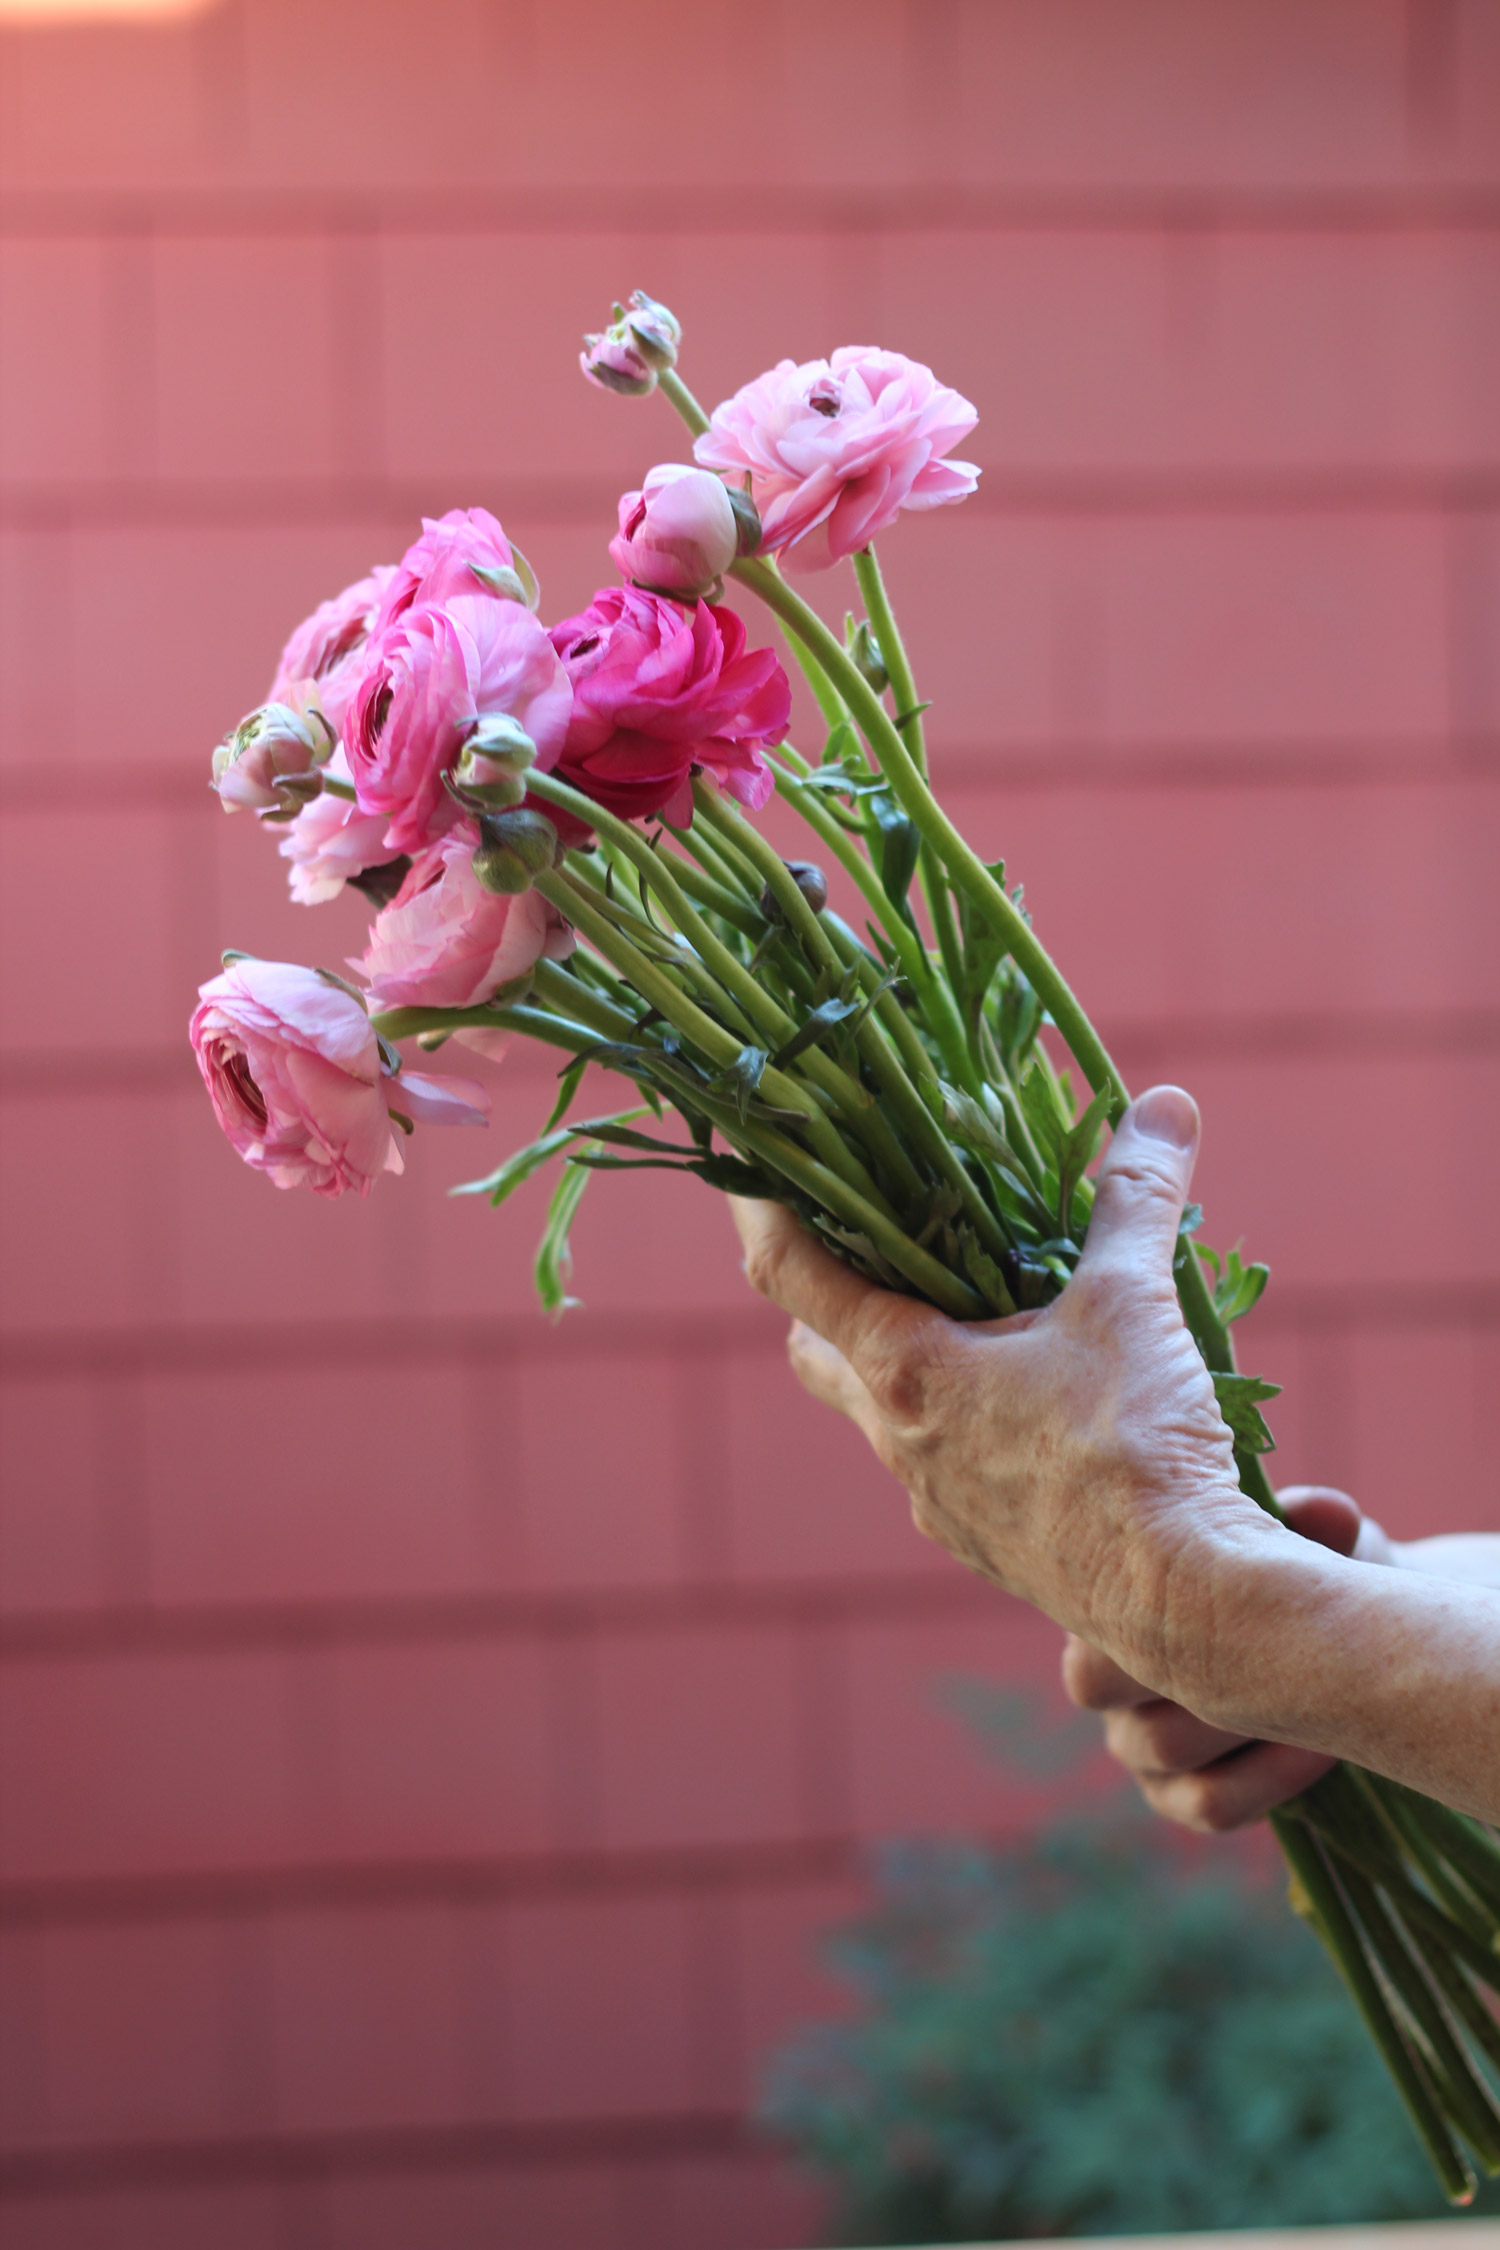 Cut 12 ranunculus blooms, and 6buds 4 - 6 inches long.